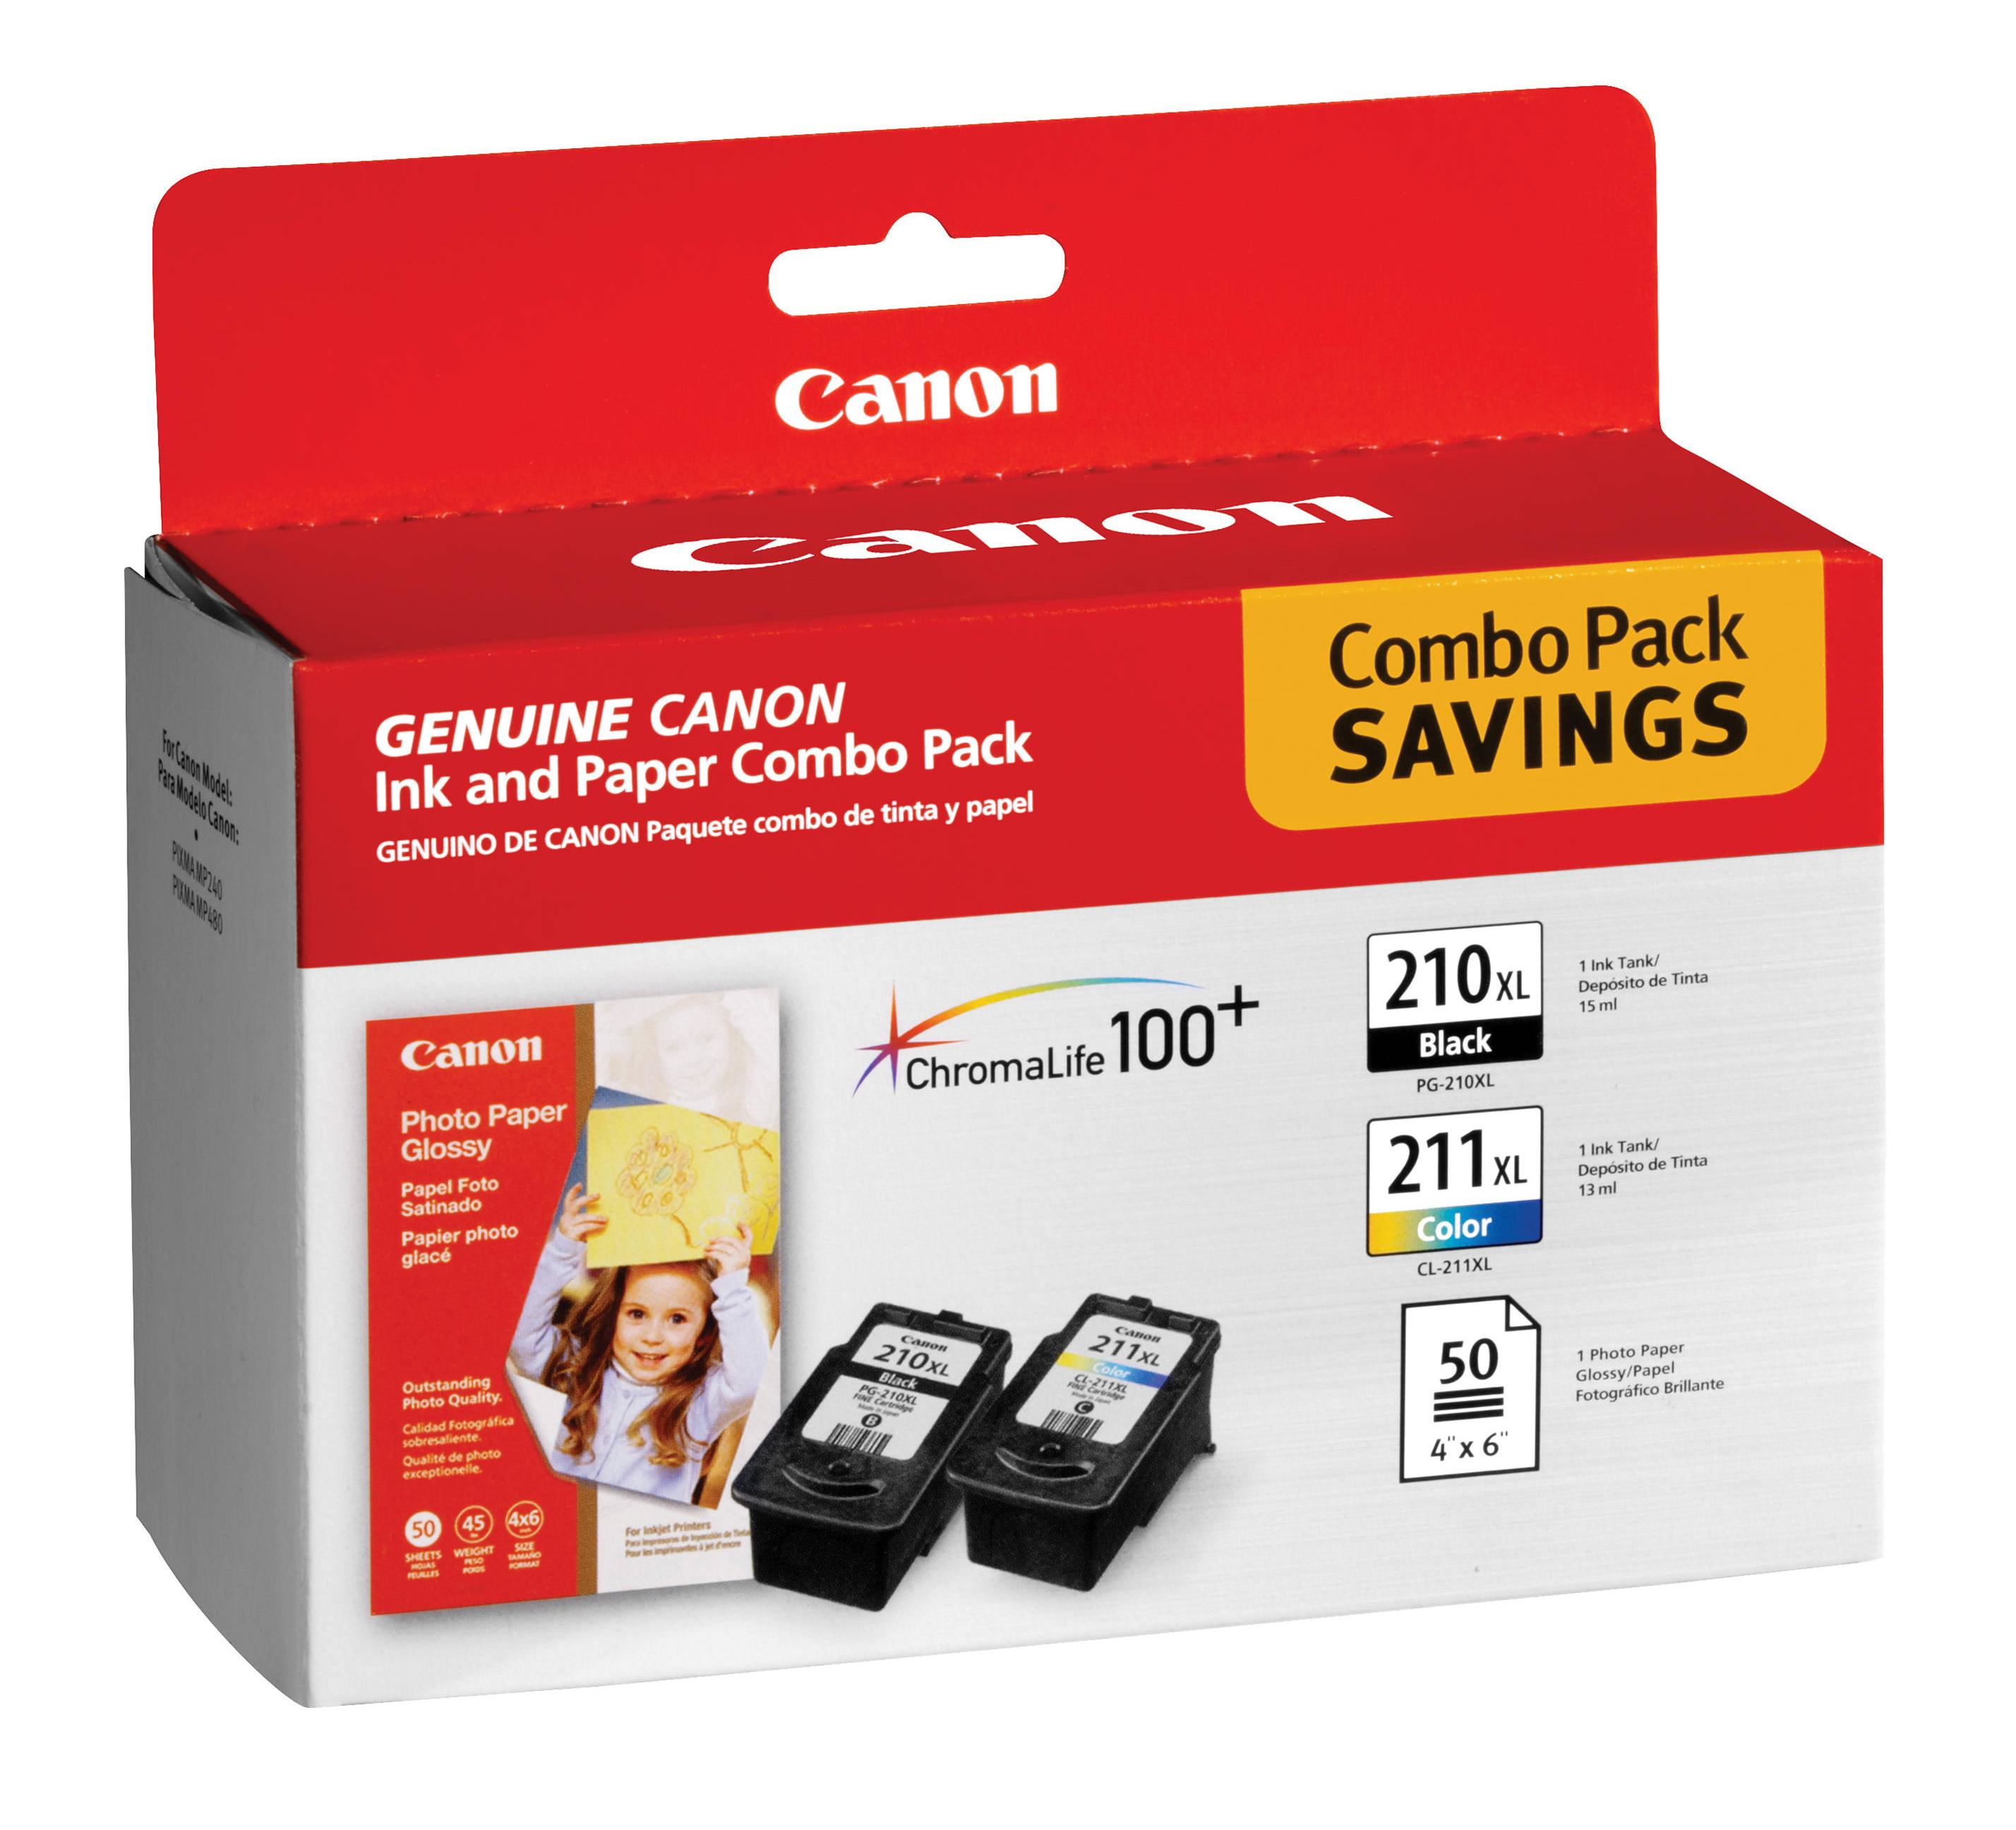 2973B004 | Canon PG-210/CL-221 | Original Canon Ink & Paper Combo Pack - Black, Cyan, Yellow, Magenta